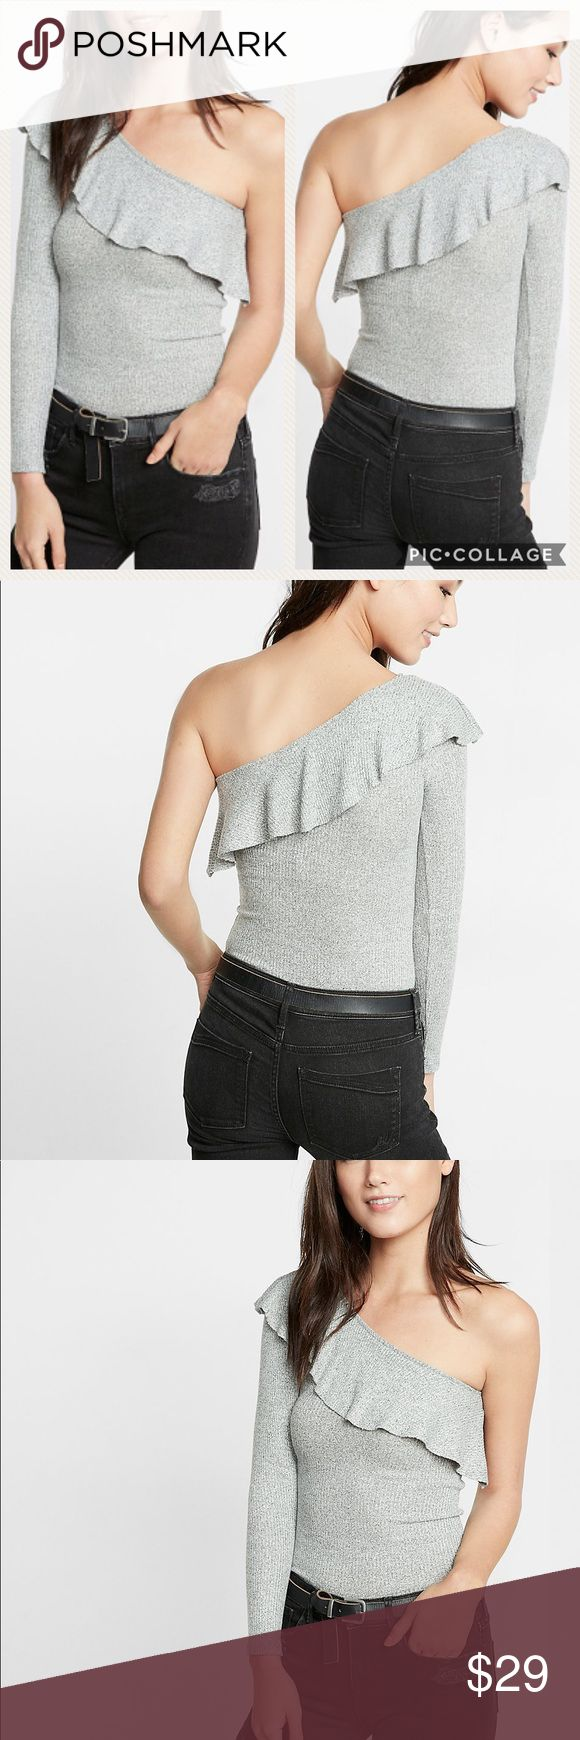 One Shoulder Ruffle Top Brand New, Available in Large or Xlarge, Color: Gray, Casual meets sexy in this soft, textured tee. The one-shoulder cut reveals a flirty glimpse of skin, while ruffles dance playfully along the neckline. Go laid-back and wear it with some stunning denim leggings.  One shoulder design Long sleeves Ruffle detail; Ribbed fabric Straight hem Rayon/Polyester/Spandex Machine wash Imported Express Tops